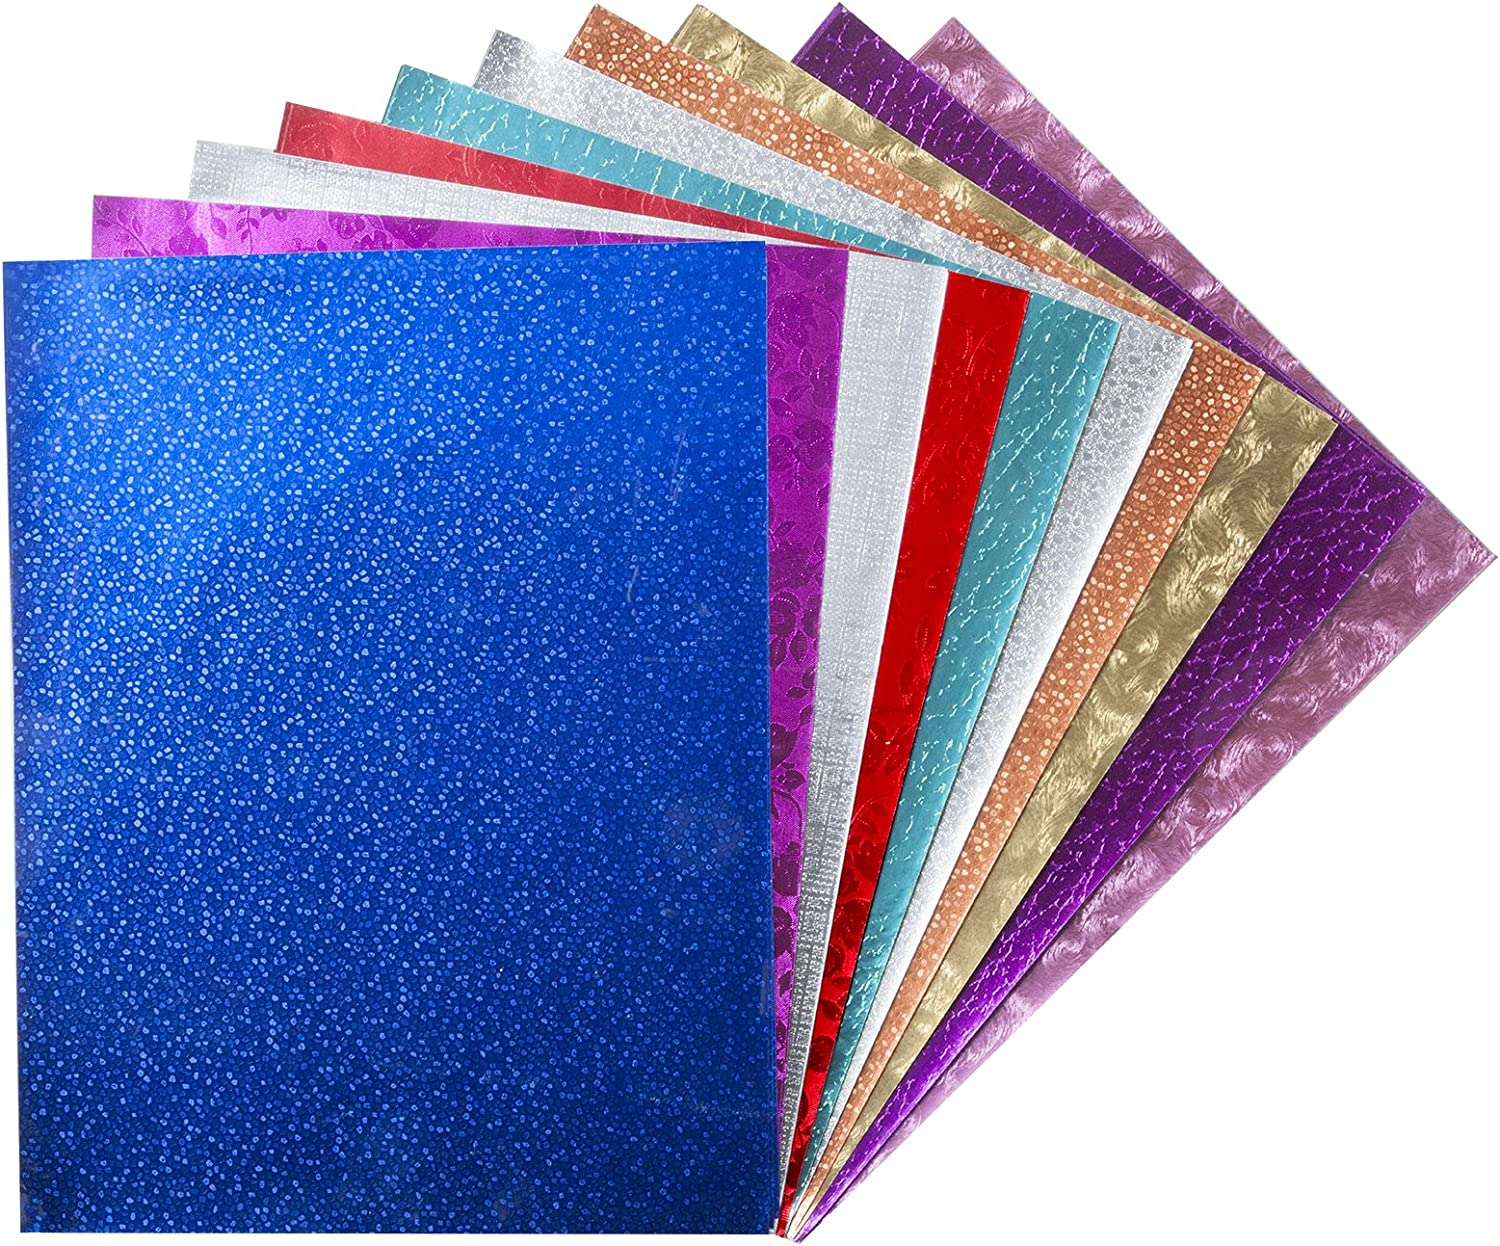 20 X 26 in Hygloss Metallic Foil Paper Pack of 12 Assorted Color 12 Sheets